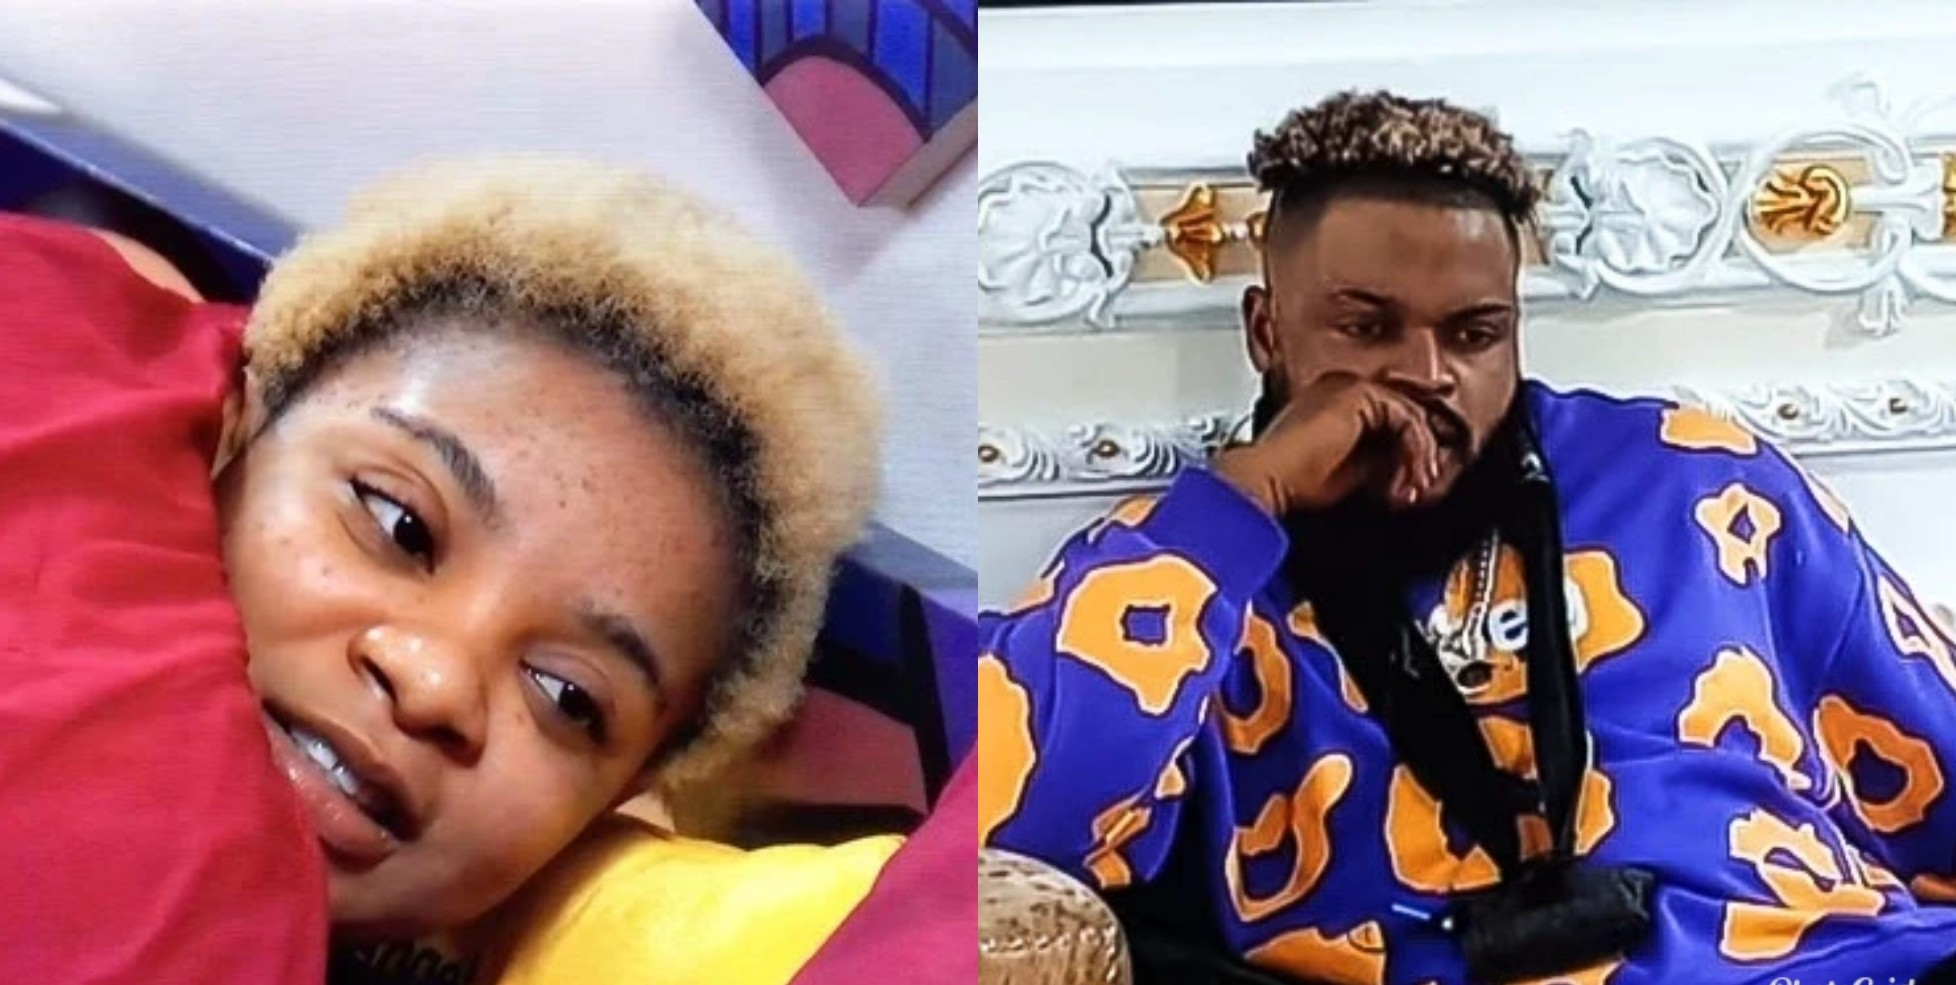 VIDEO: Whitemoney told me not to kiss Cross but he kissed JMK – Queen laments